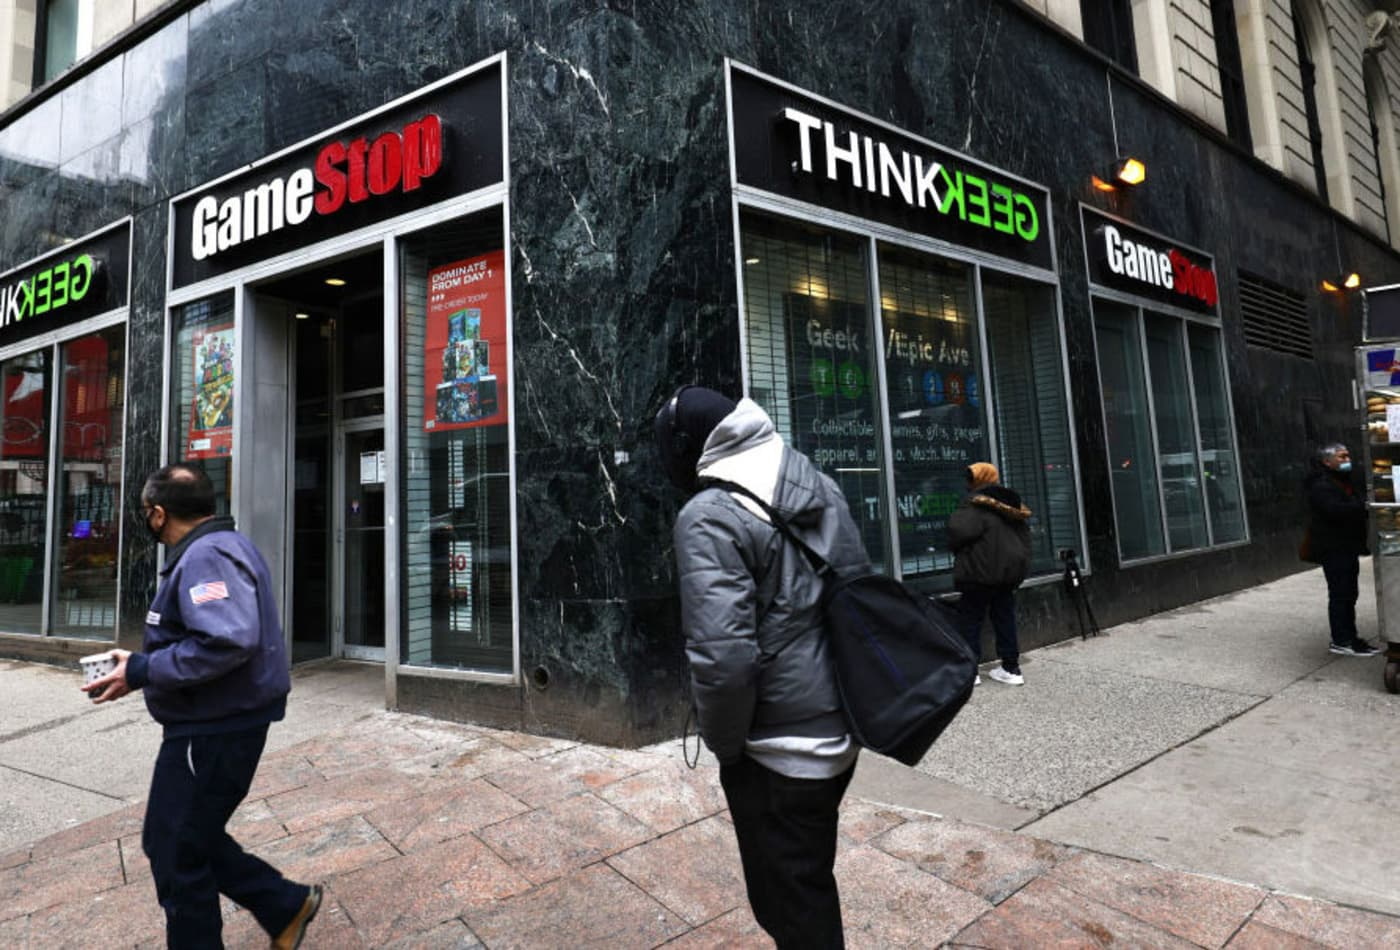 GameStop's stock closes down more than 40% after brokers place restrictions on trades